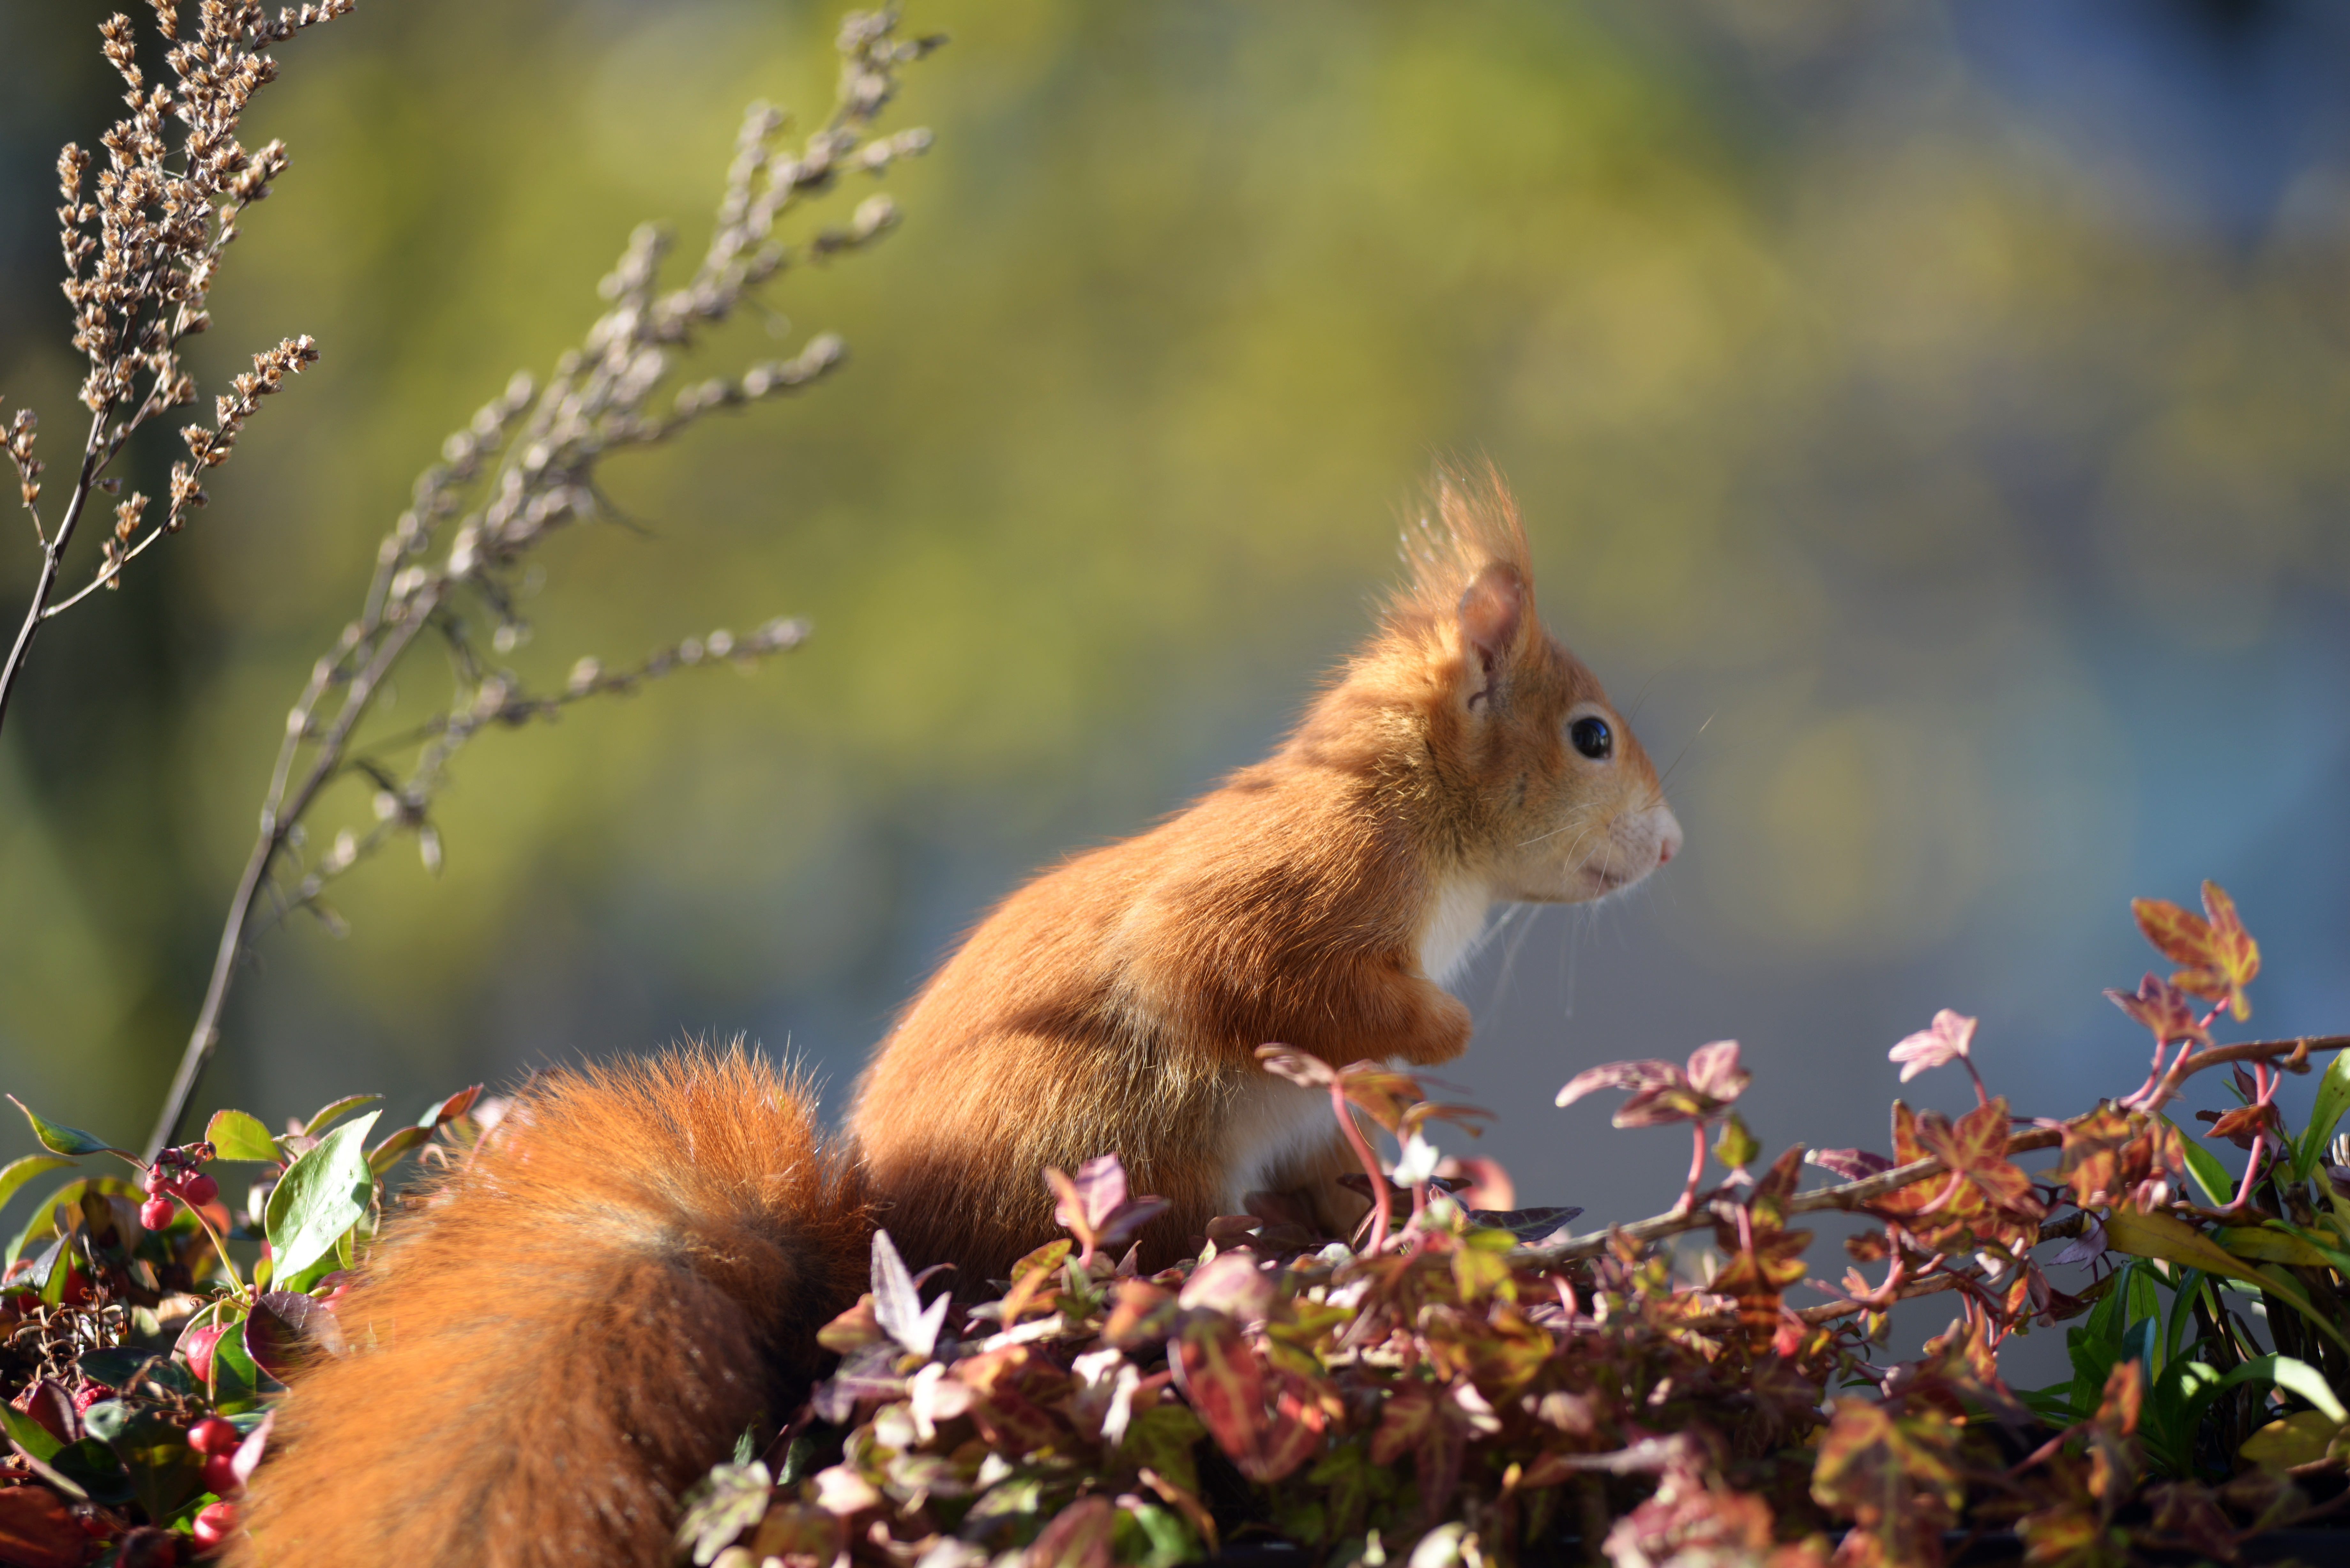 119421 download wallpaper Animals, Squirrel, Animal, Foliage screensavers and pictures for free